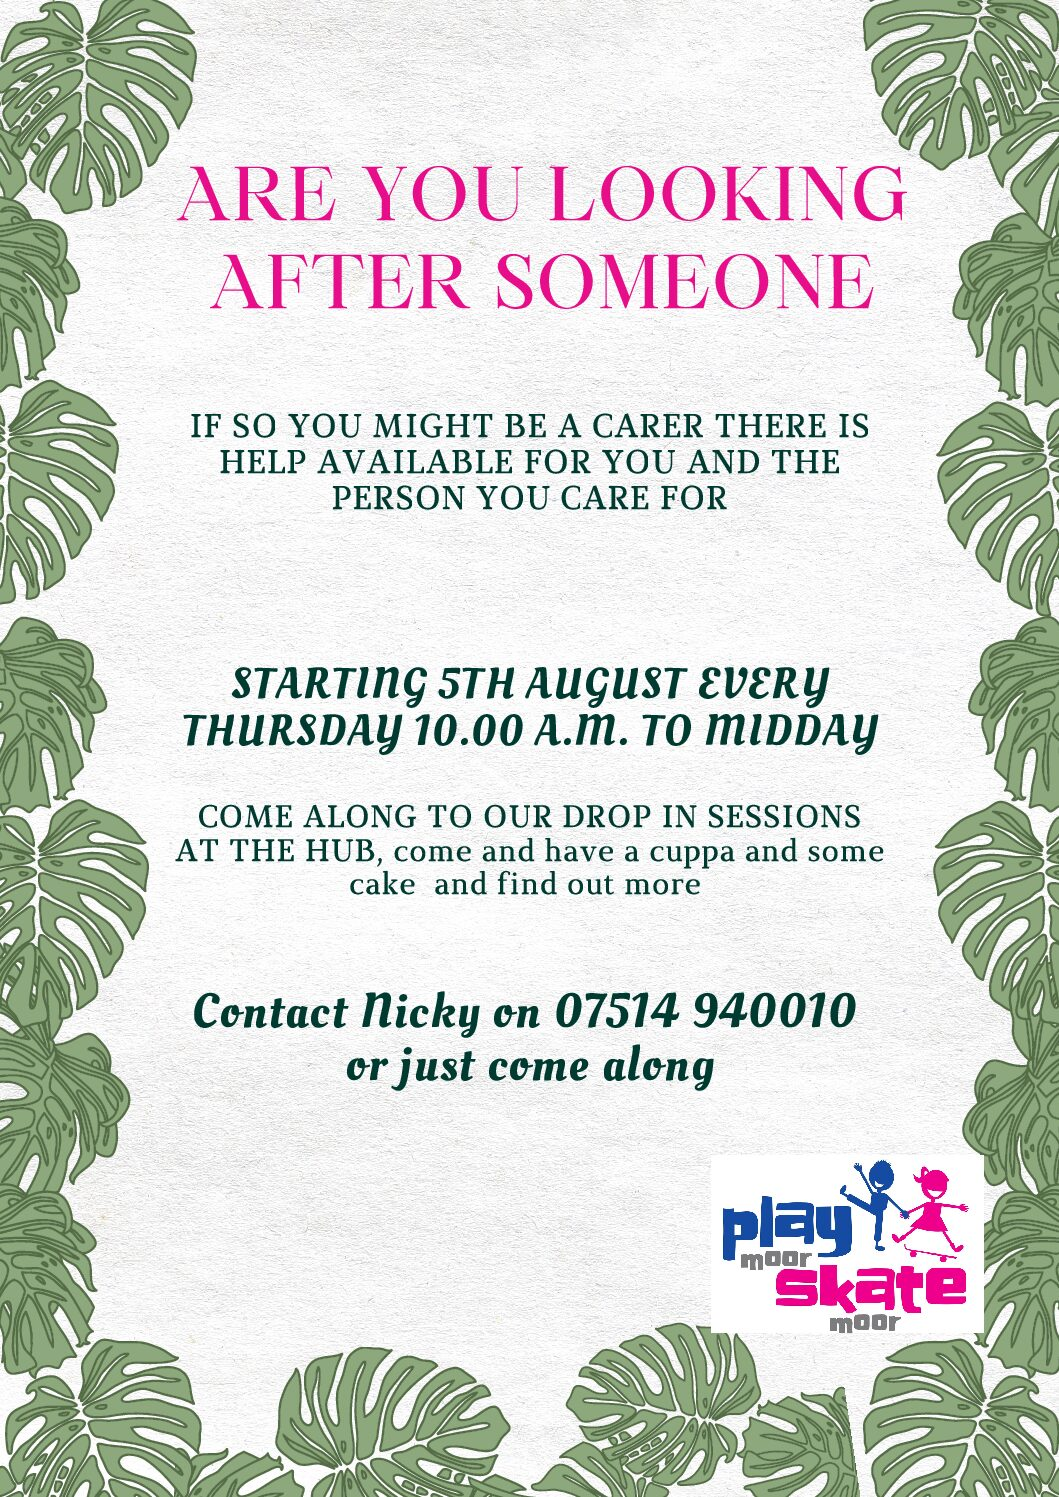 Drop in sessions for carers in Turlin Moor